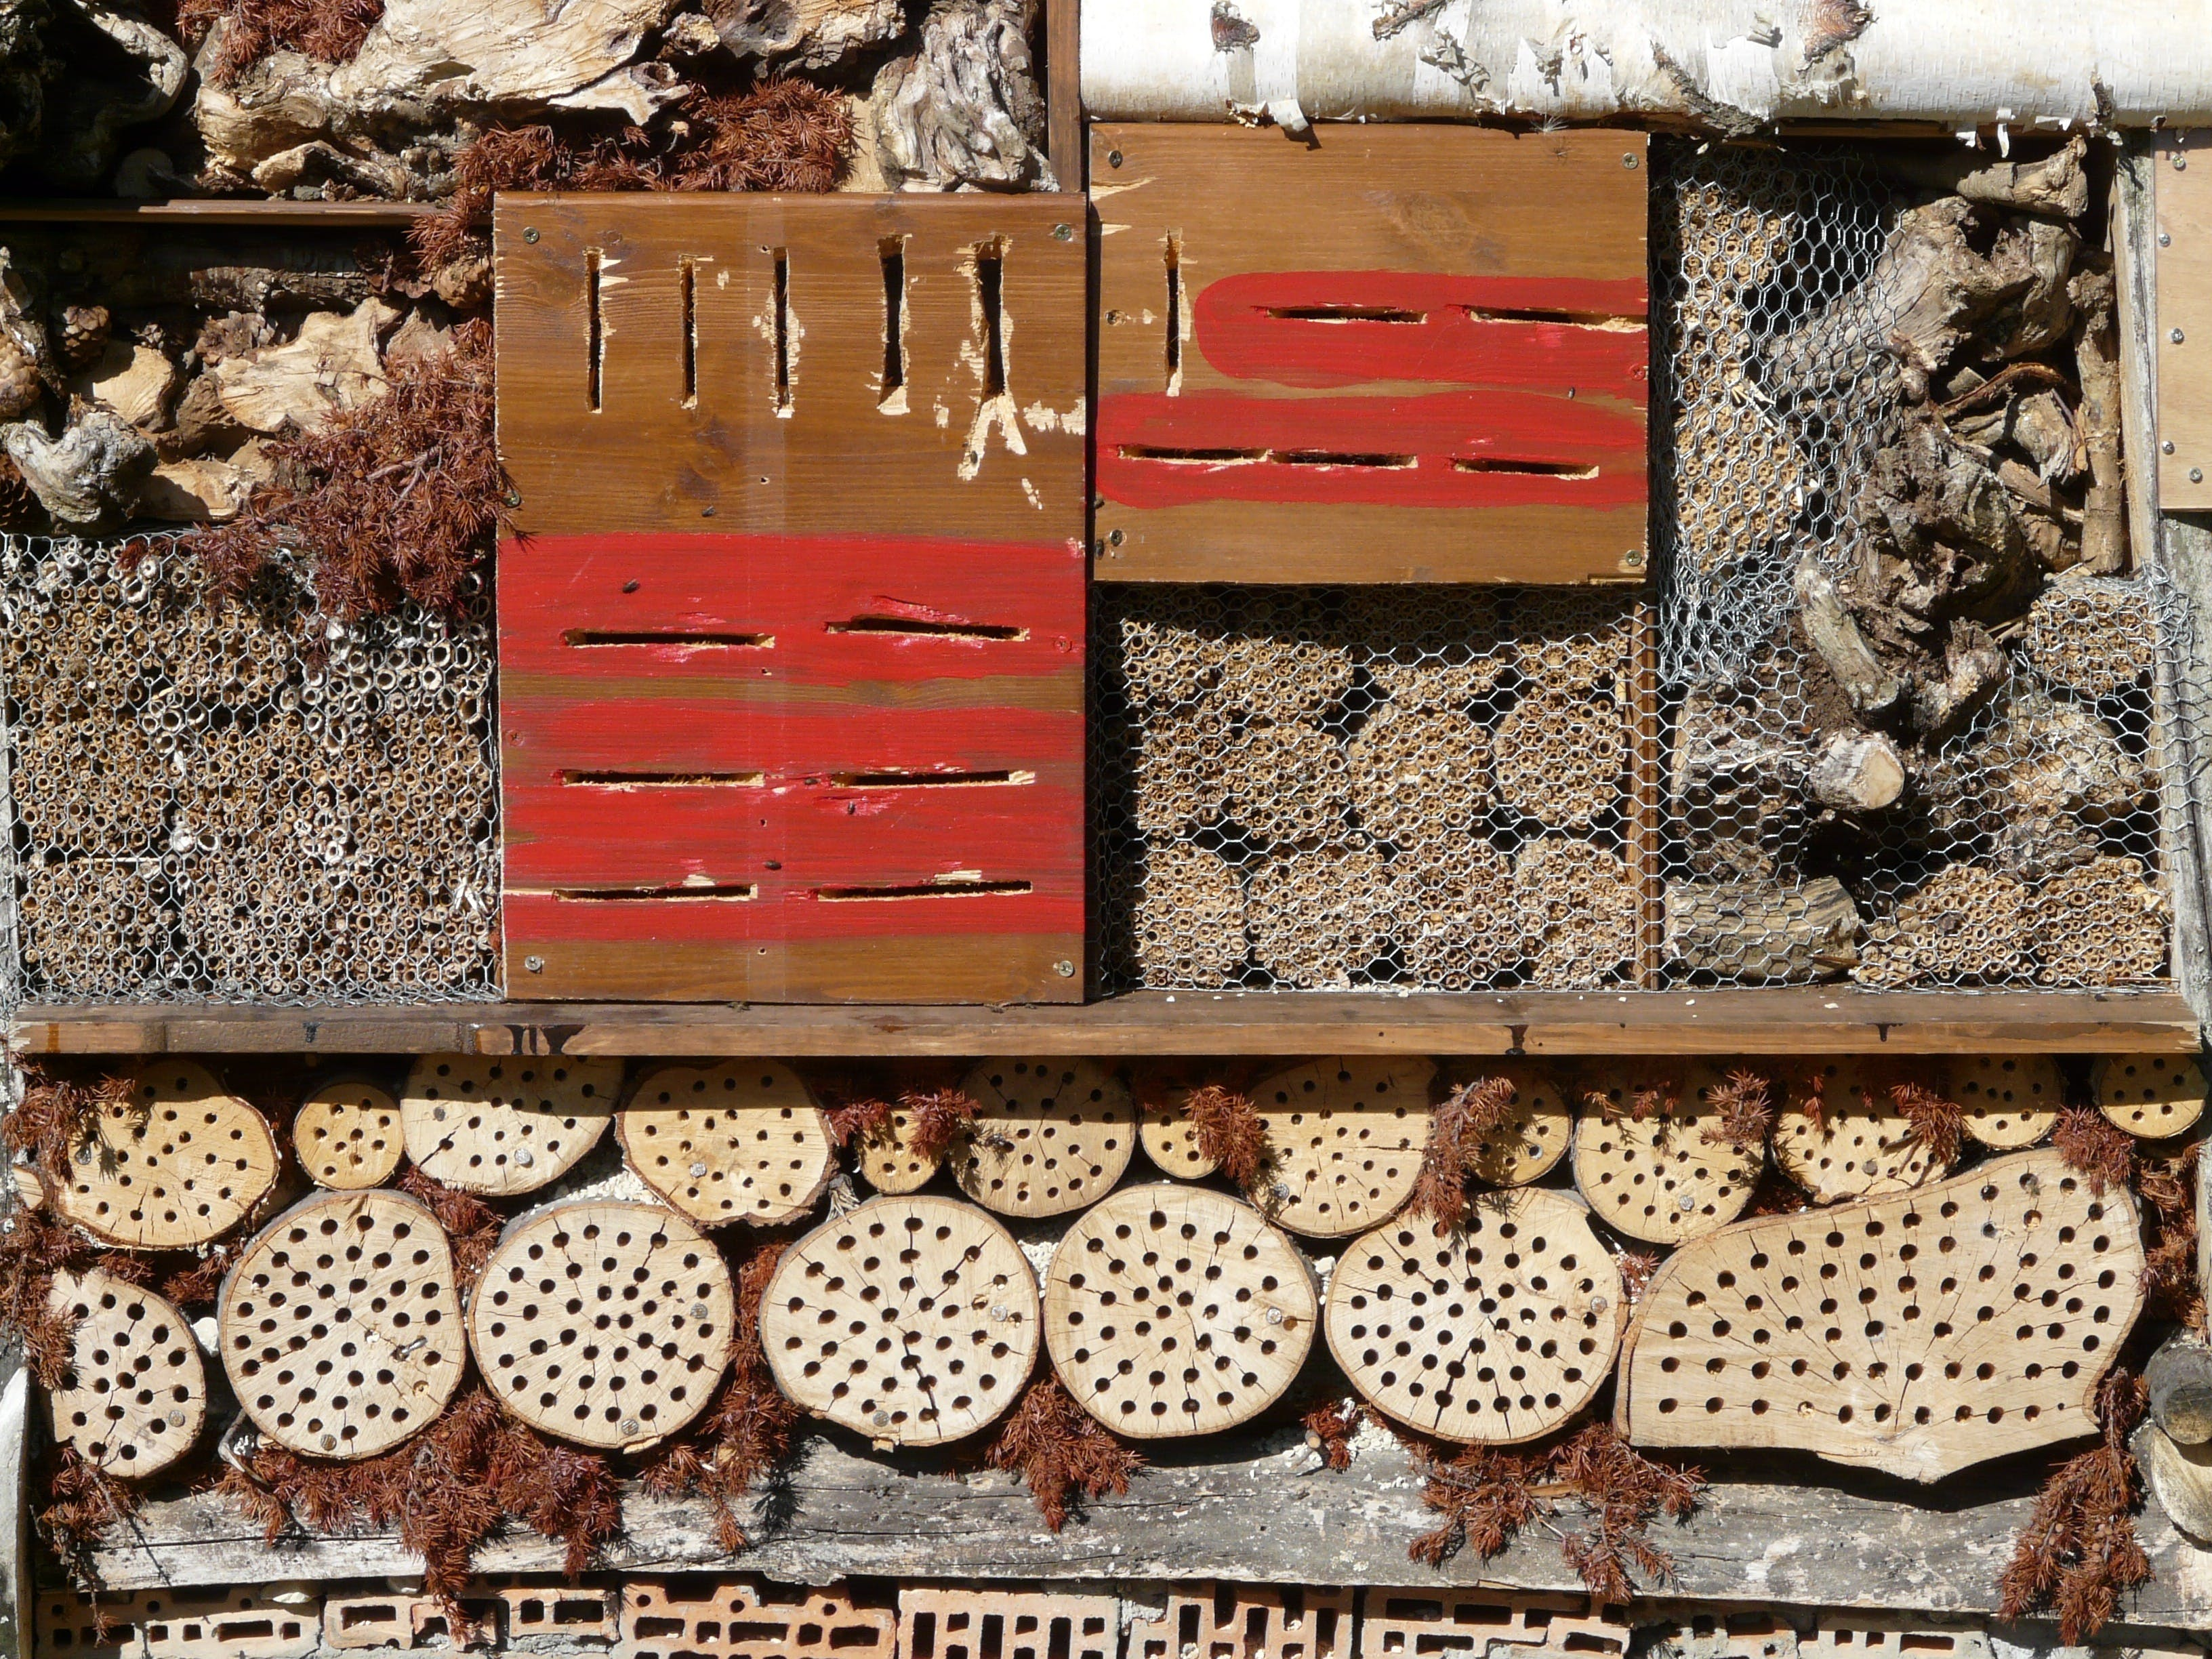 Free stock photo of wood, bricks, insect, wire